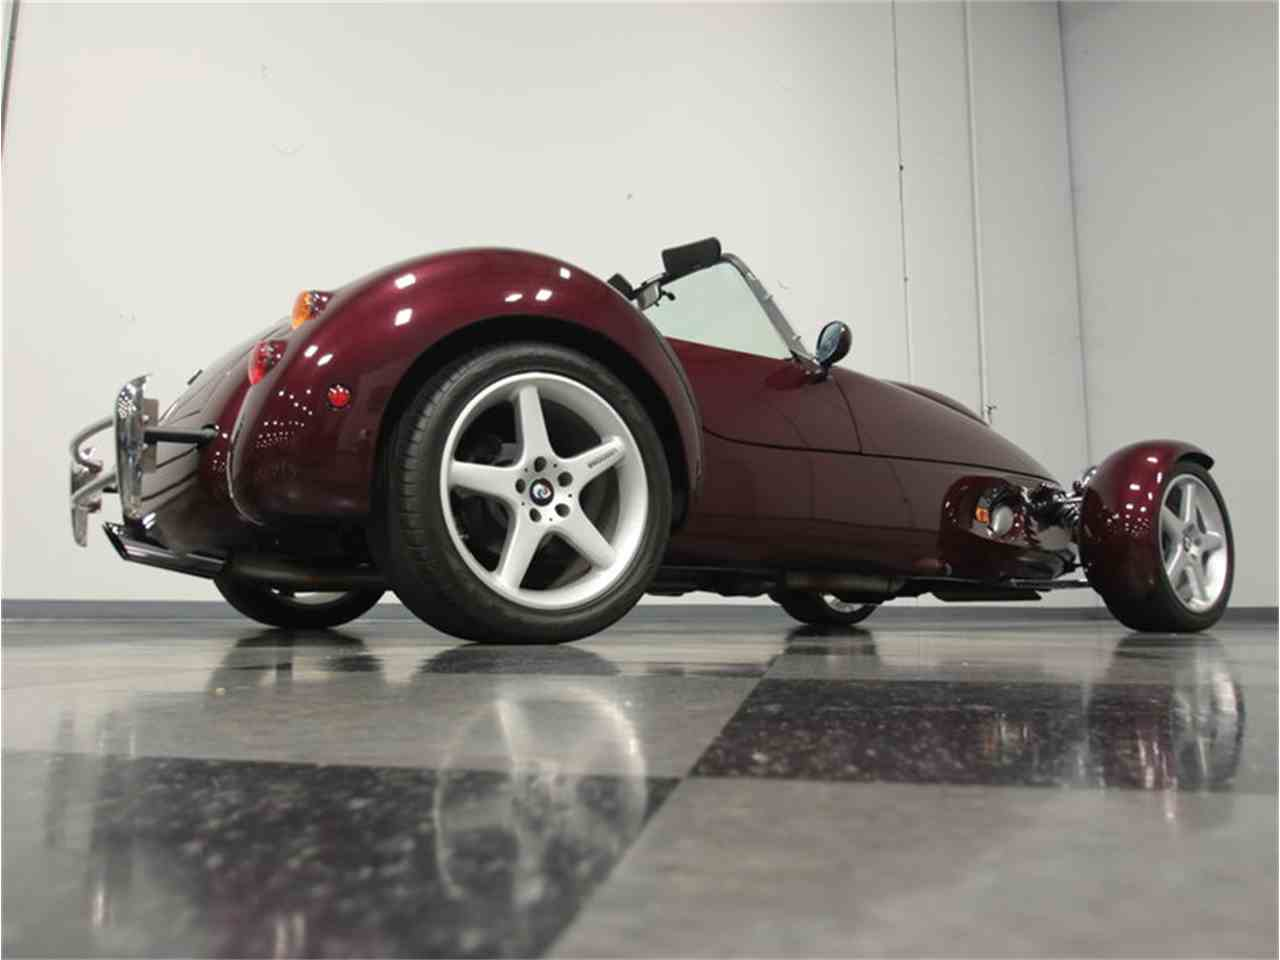 Large Picture of '98 Panoz AIV Roadster Supercharged - $41,995.00 - JPDH